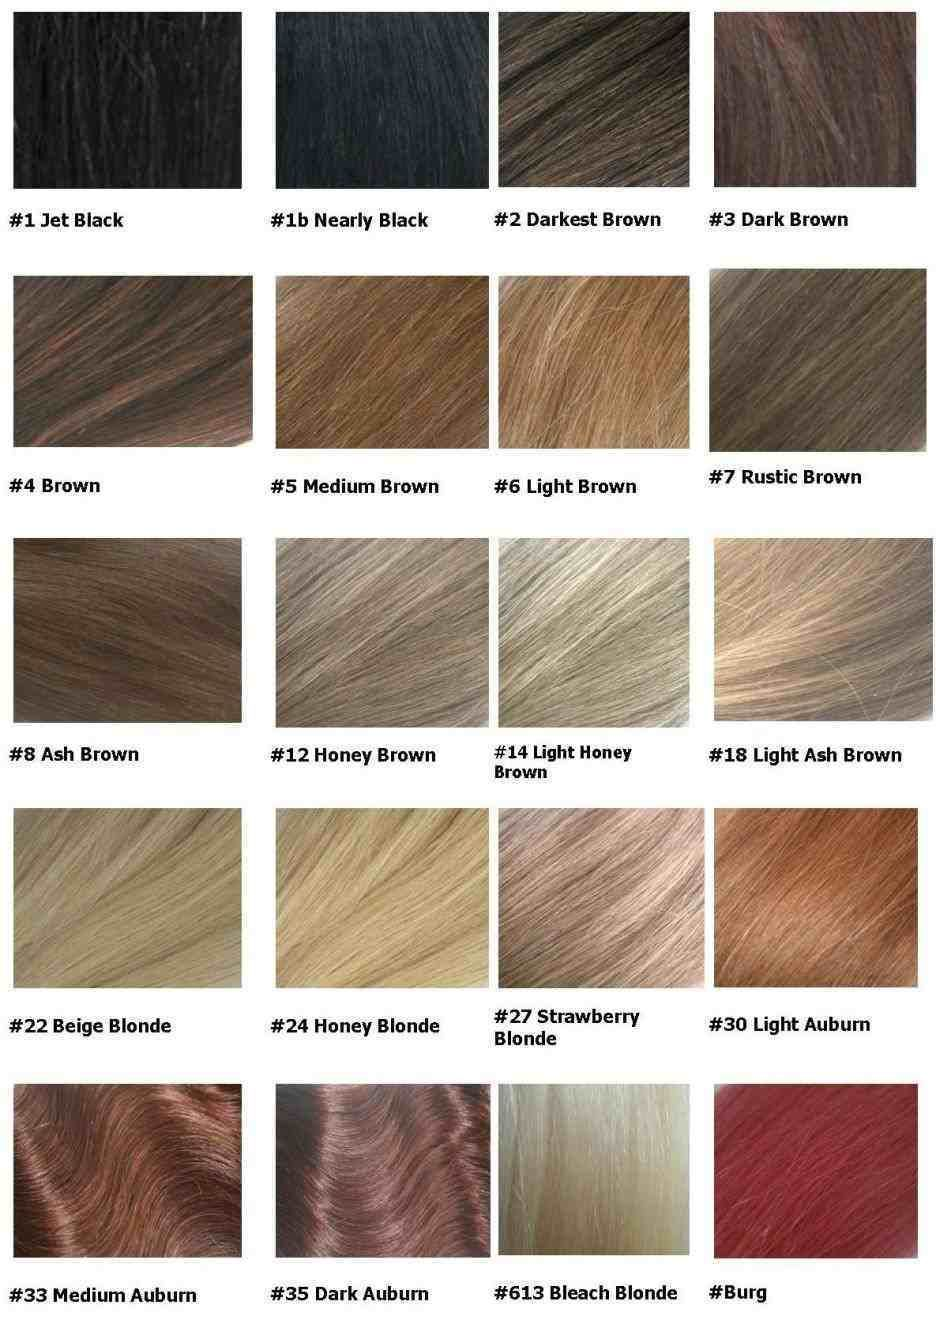 Beautiful Balayage Caramel Highlights Hair Fiber Black Hair Fiber Brown Hair Fiber Blond Beige Blonde Hair Color Light Ash Brown Hair Blonde Hair Color Chart